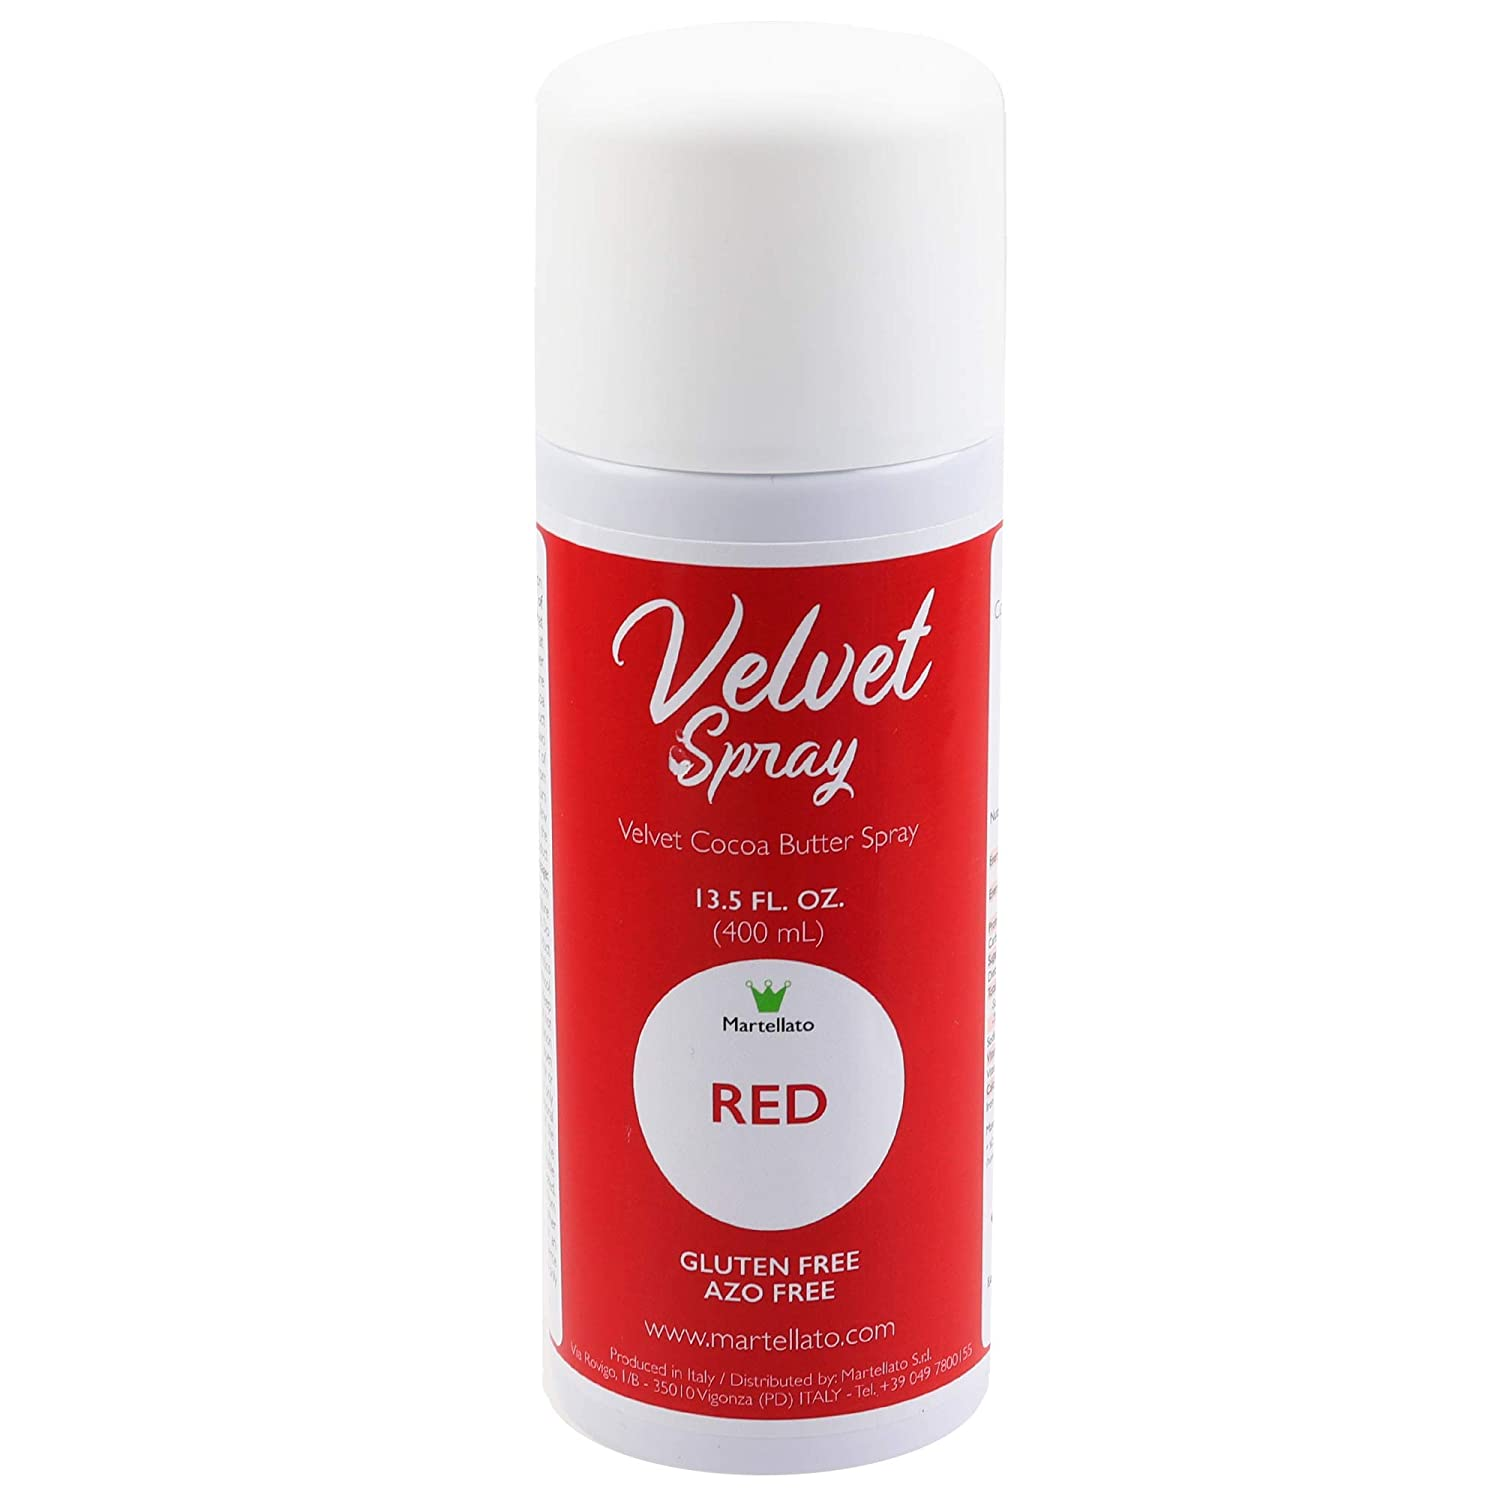 Martellato Red Velvet Spray Ounce 400ml Attention brand 13.5 New products world's highest quality popular